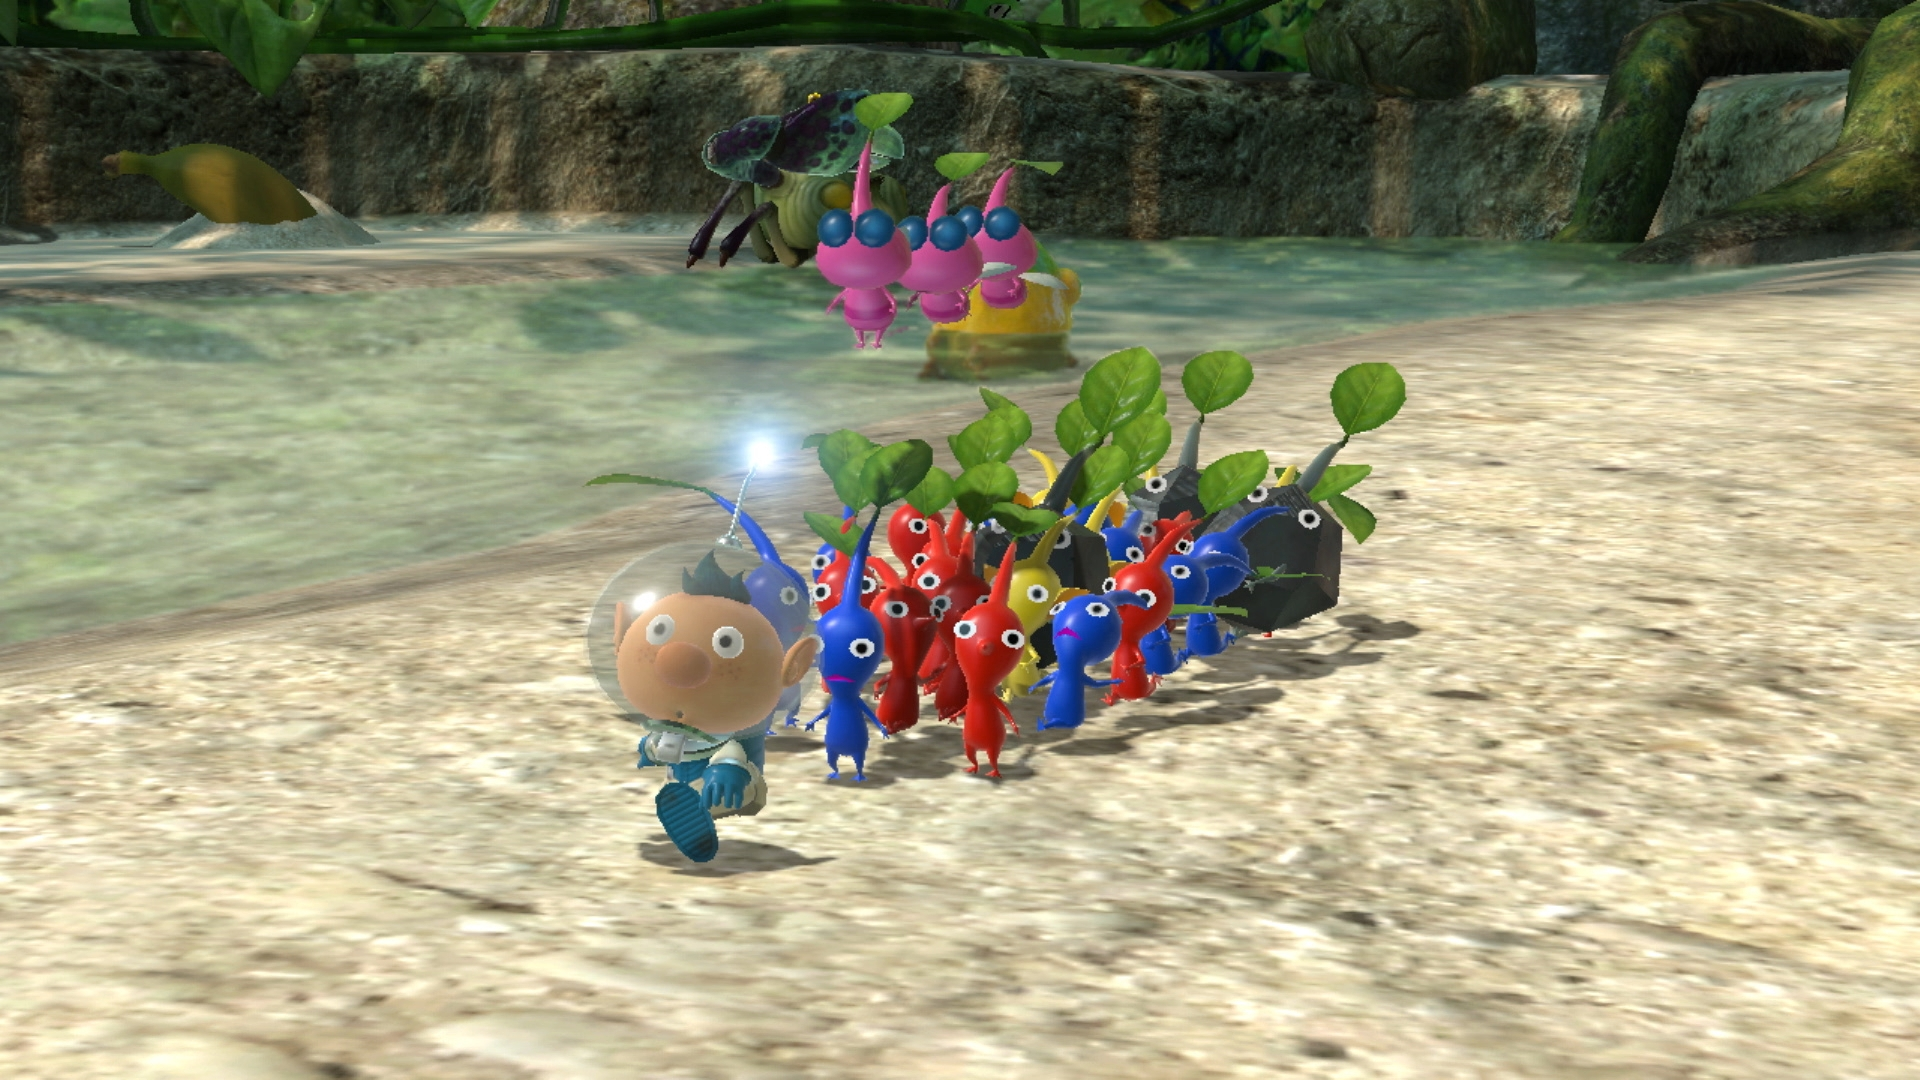 A screenshot from Pikmin 3 for an article about Pikmin evolution.